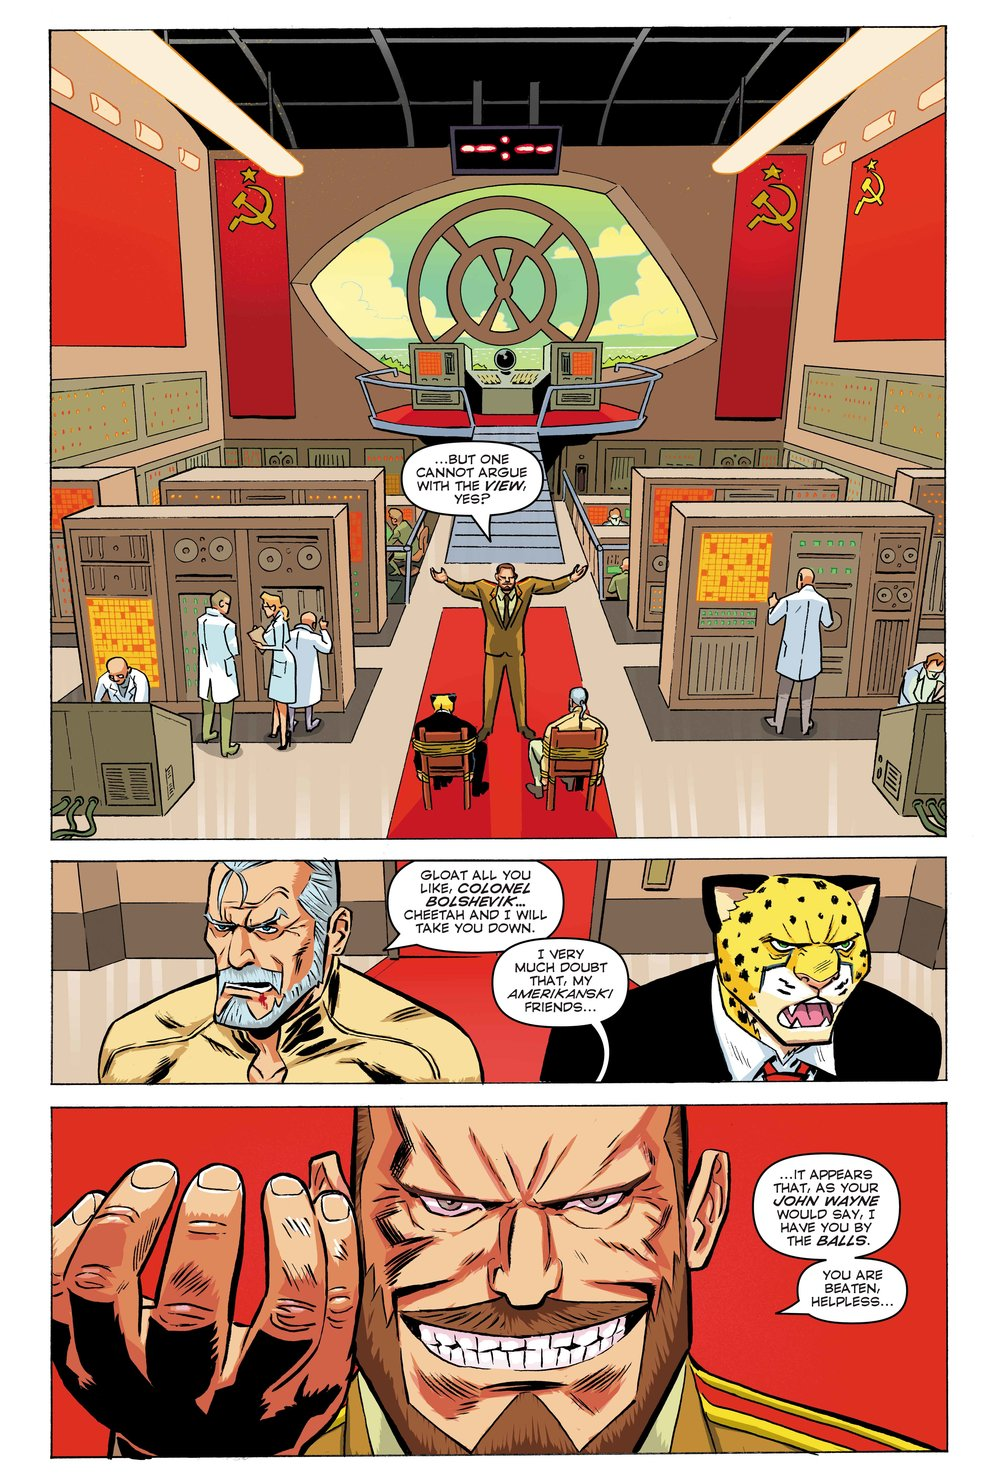 Time Cheetah - The Secret of Stalin Island Part 2 - Page 02